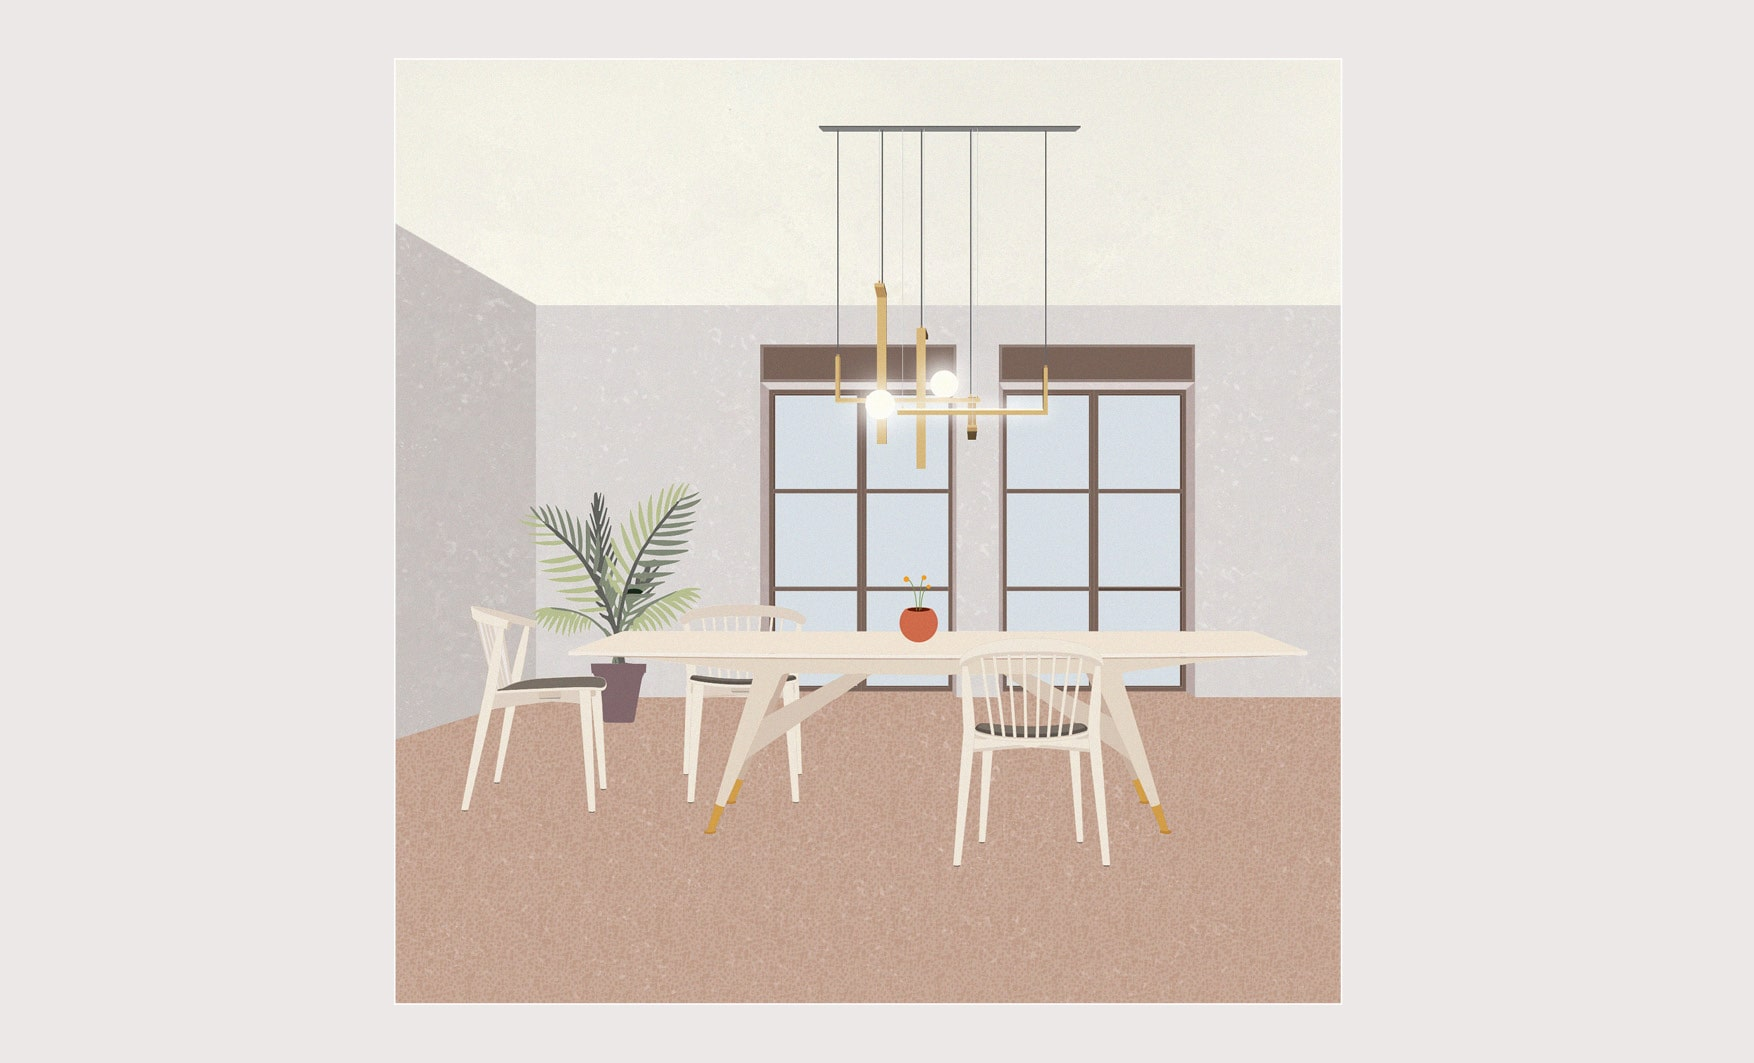 Molteni dining tables inspirations with D.859.1 Table, Newood Chairs by Cappellini and Less System Lamp by Venicem. Illustration by Esperiri